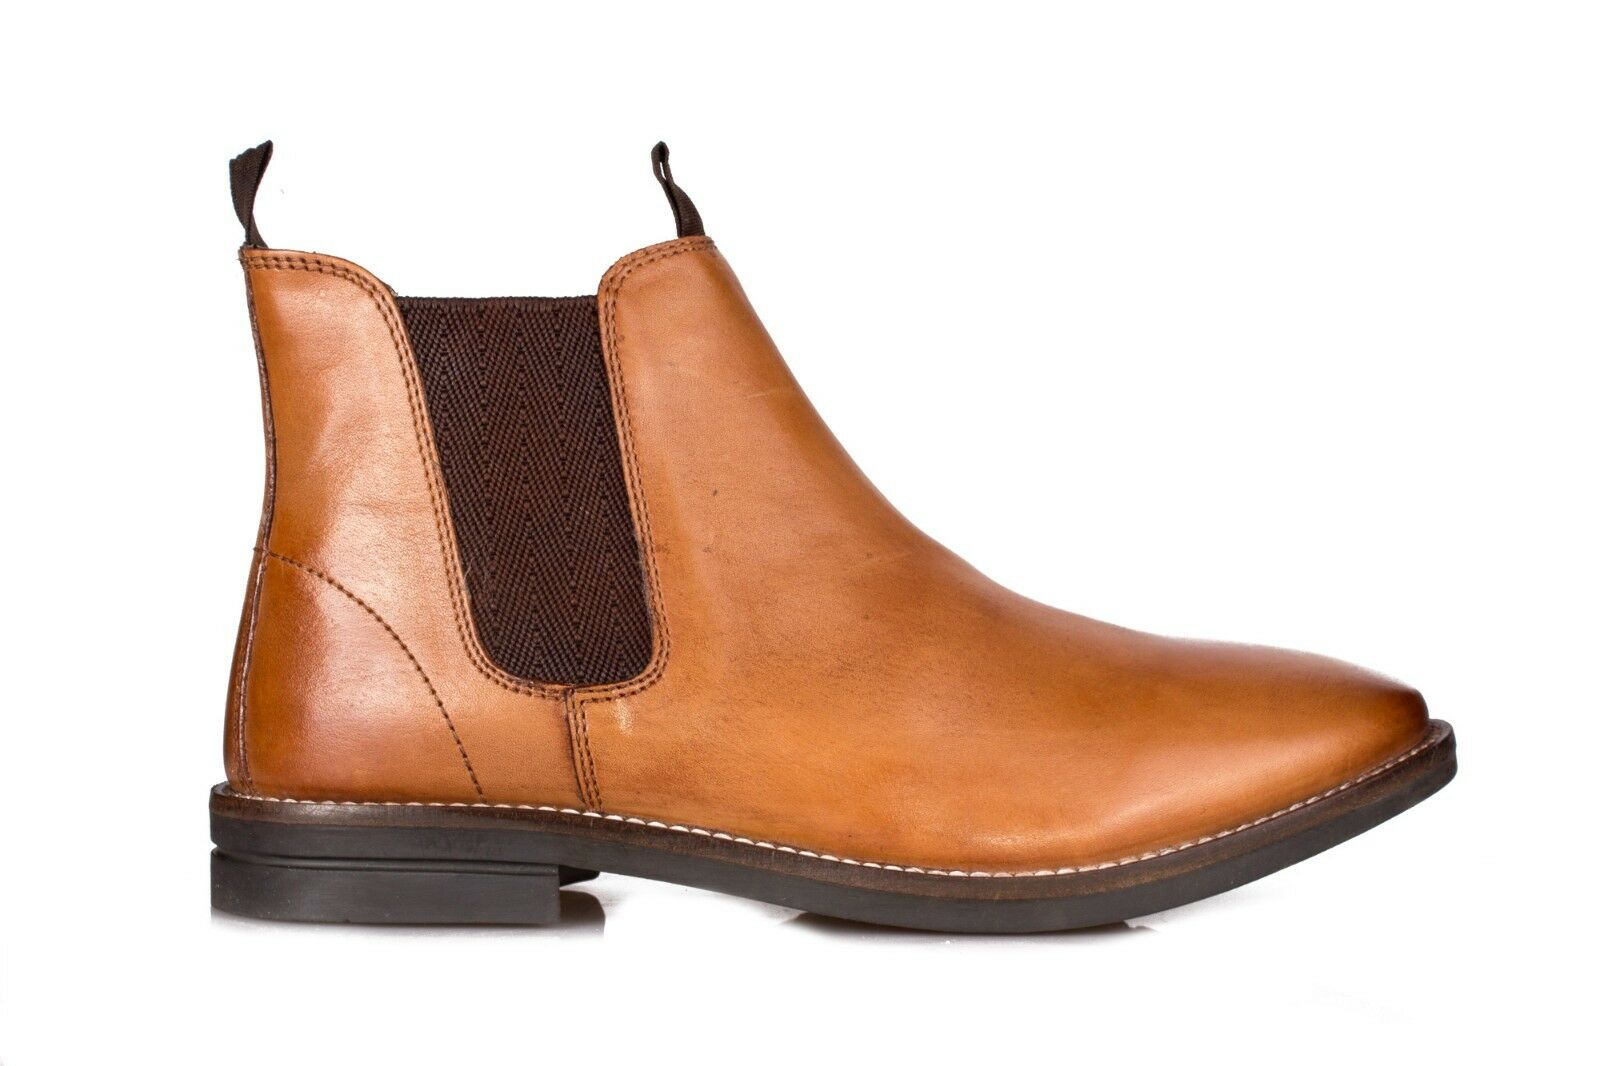 Mens Premium 100% Leather Dealer Chelsea Boot - Slip On All Day Comfort